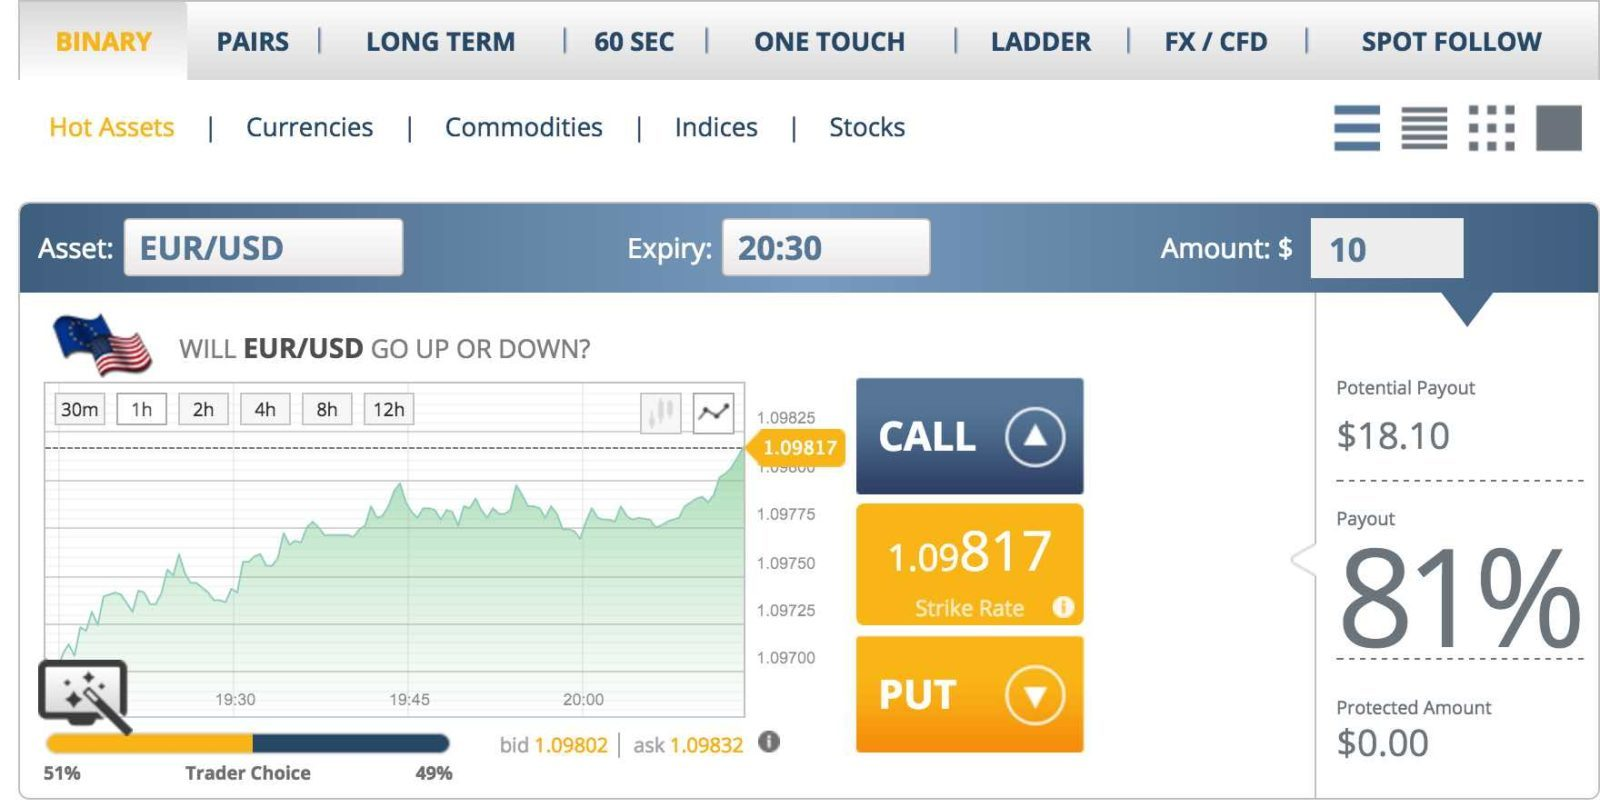 Trusted binary options company